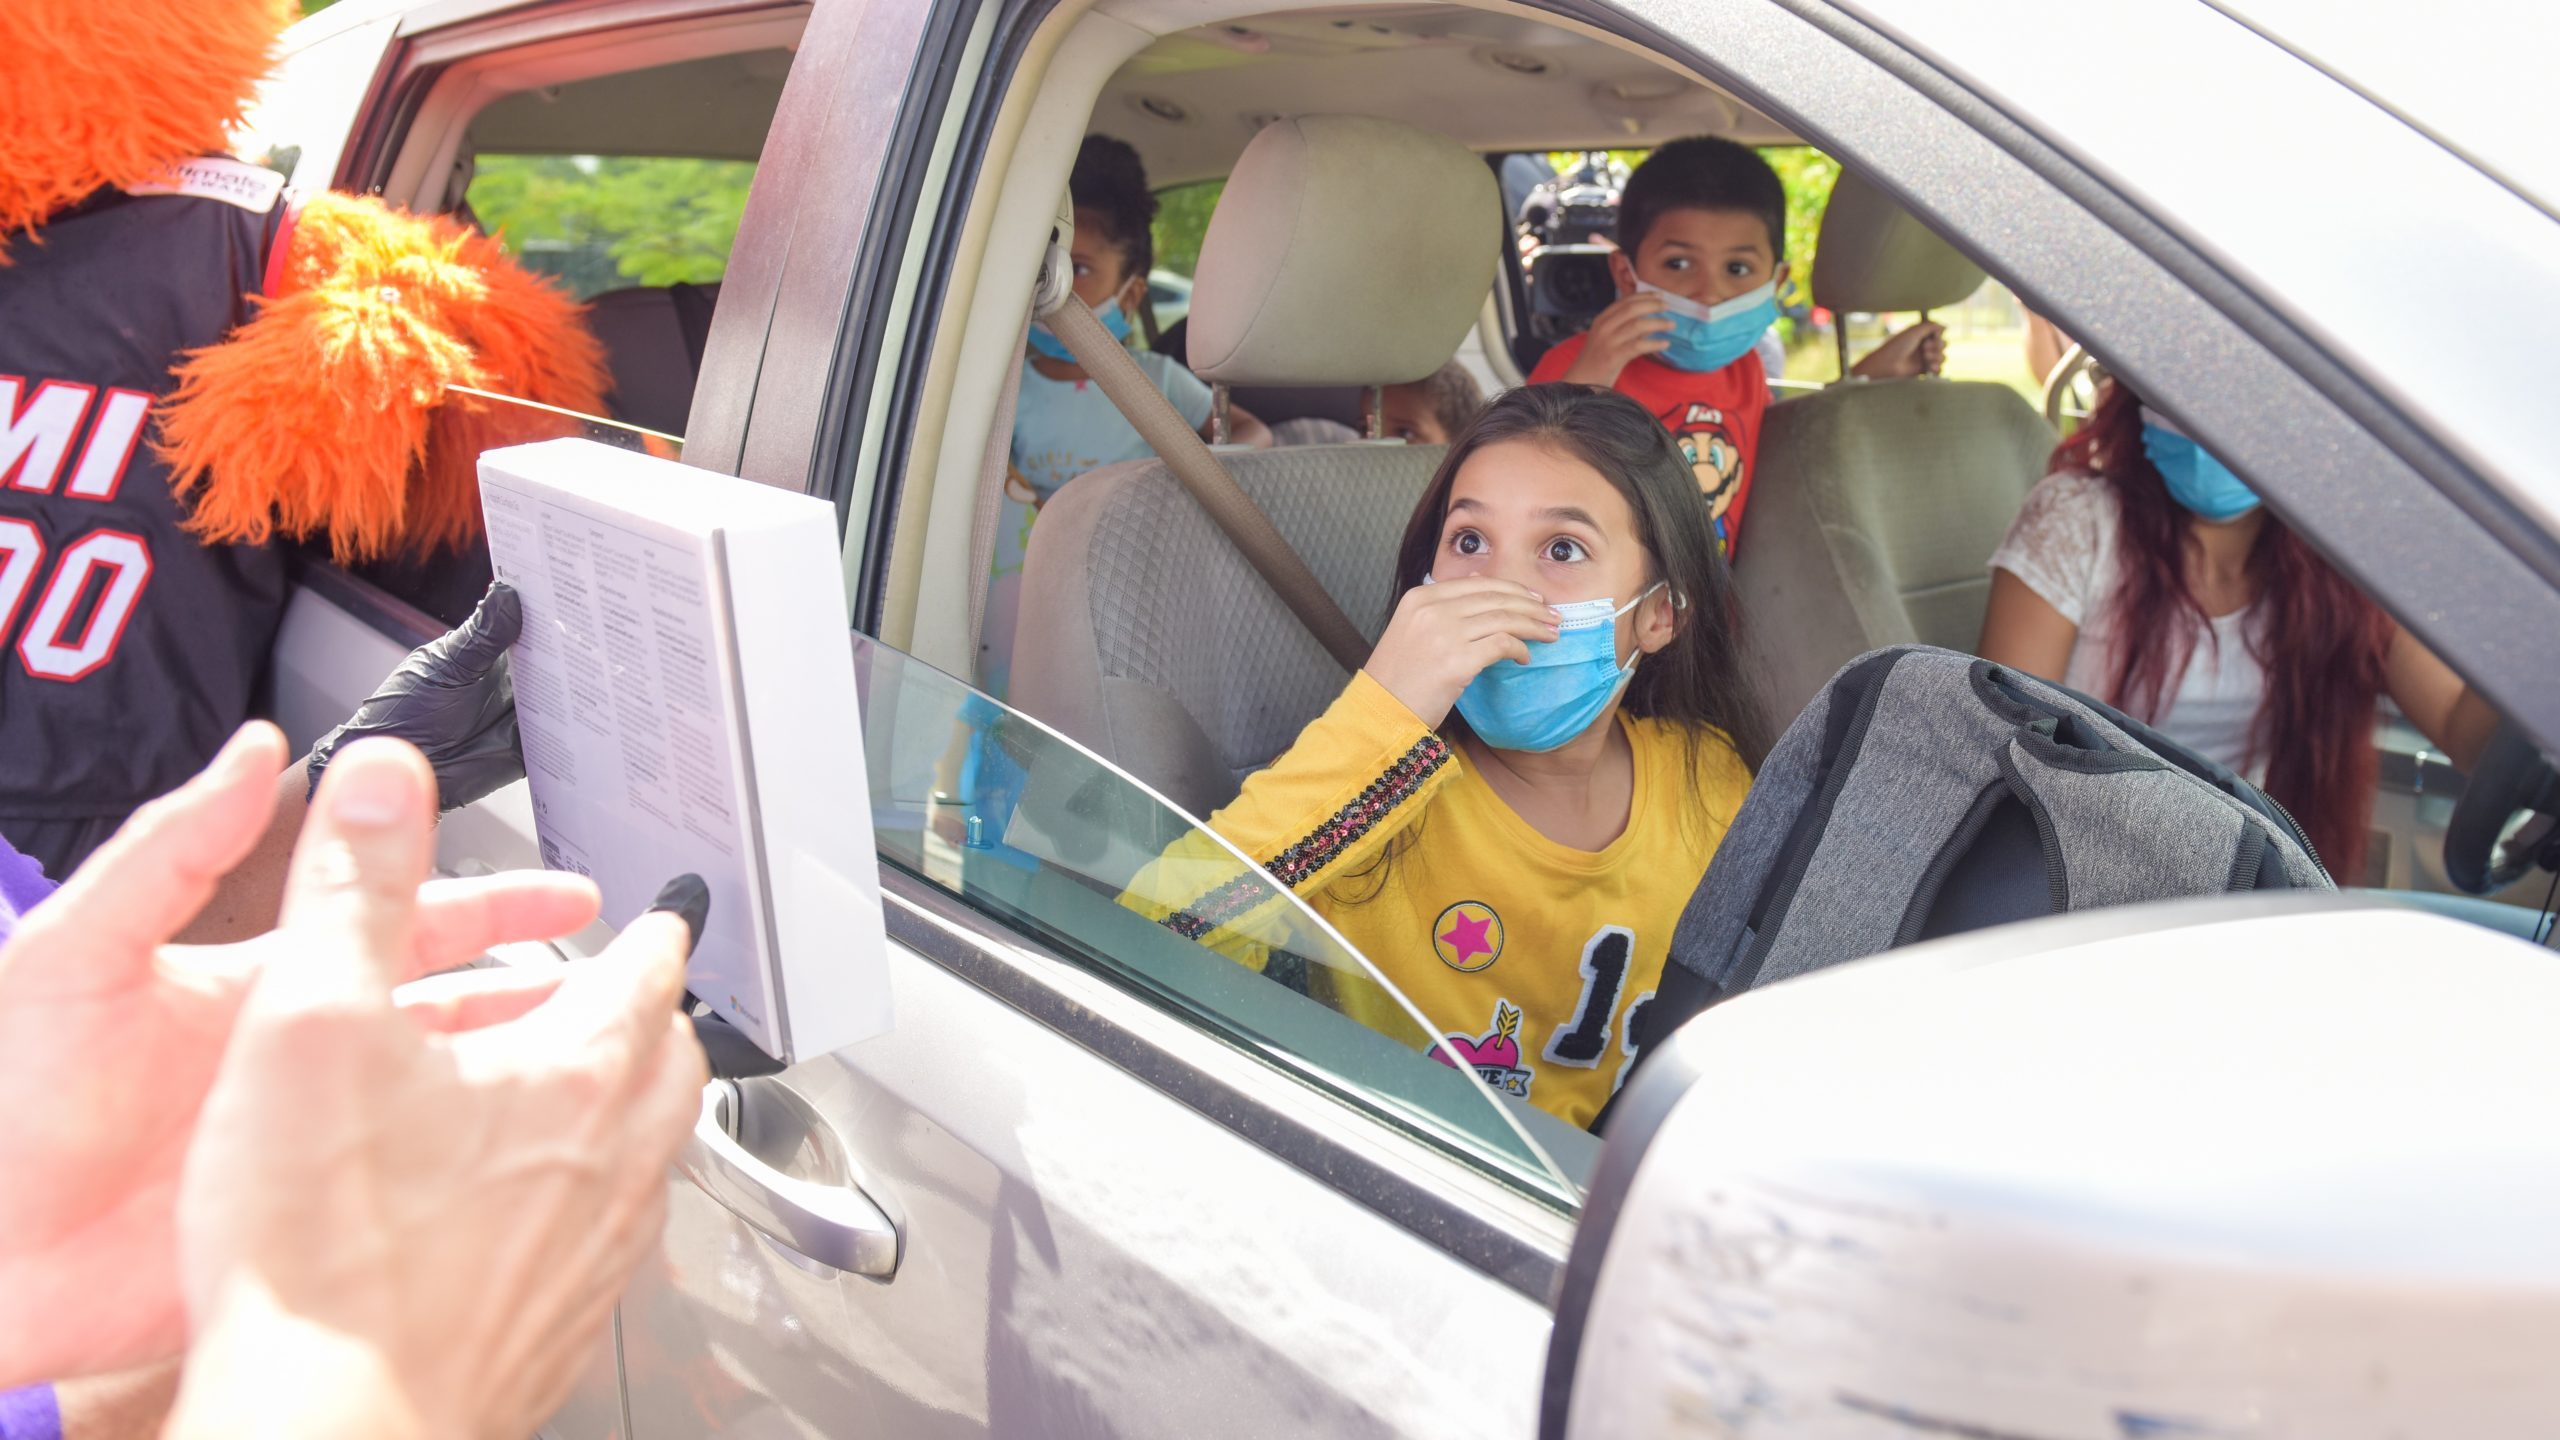 Children in a car exclaim with excitement